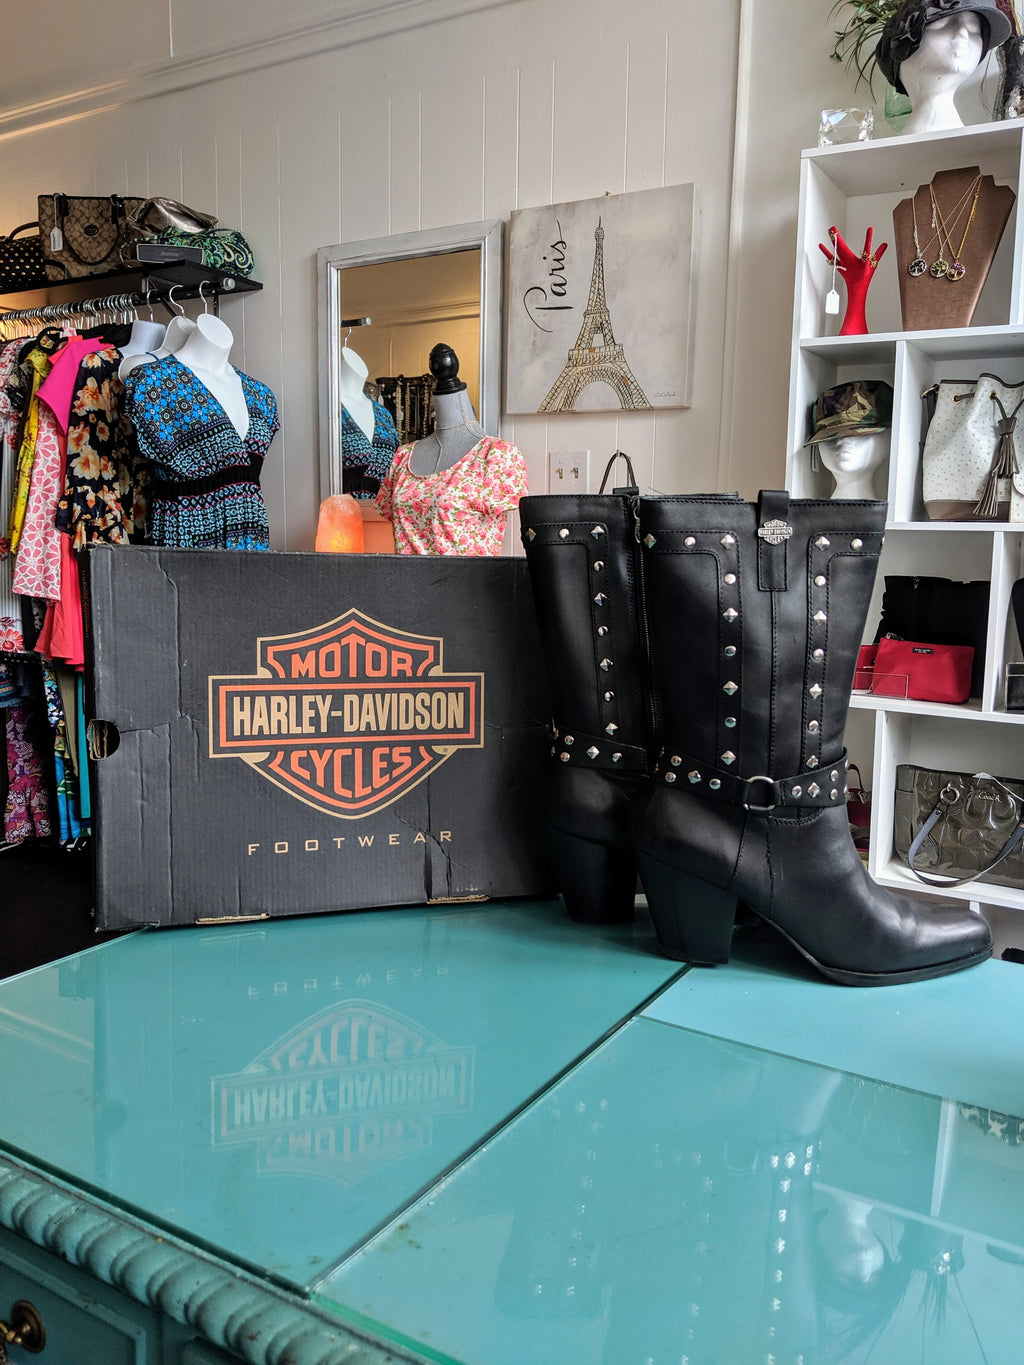 Harley Davidson women's leather boots